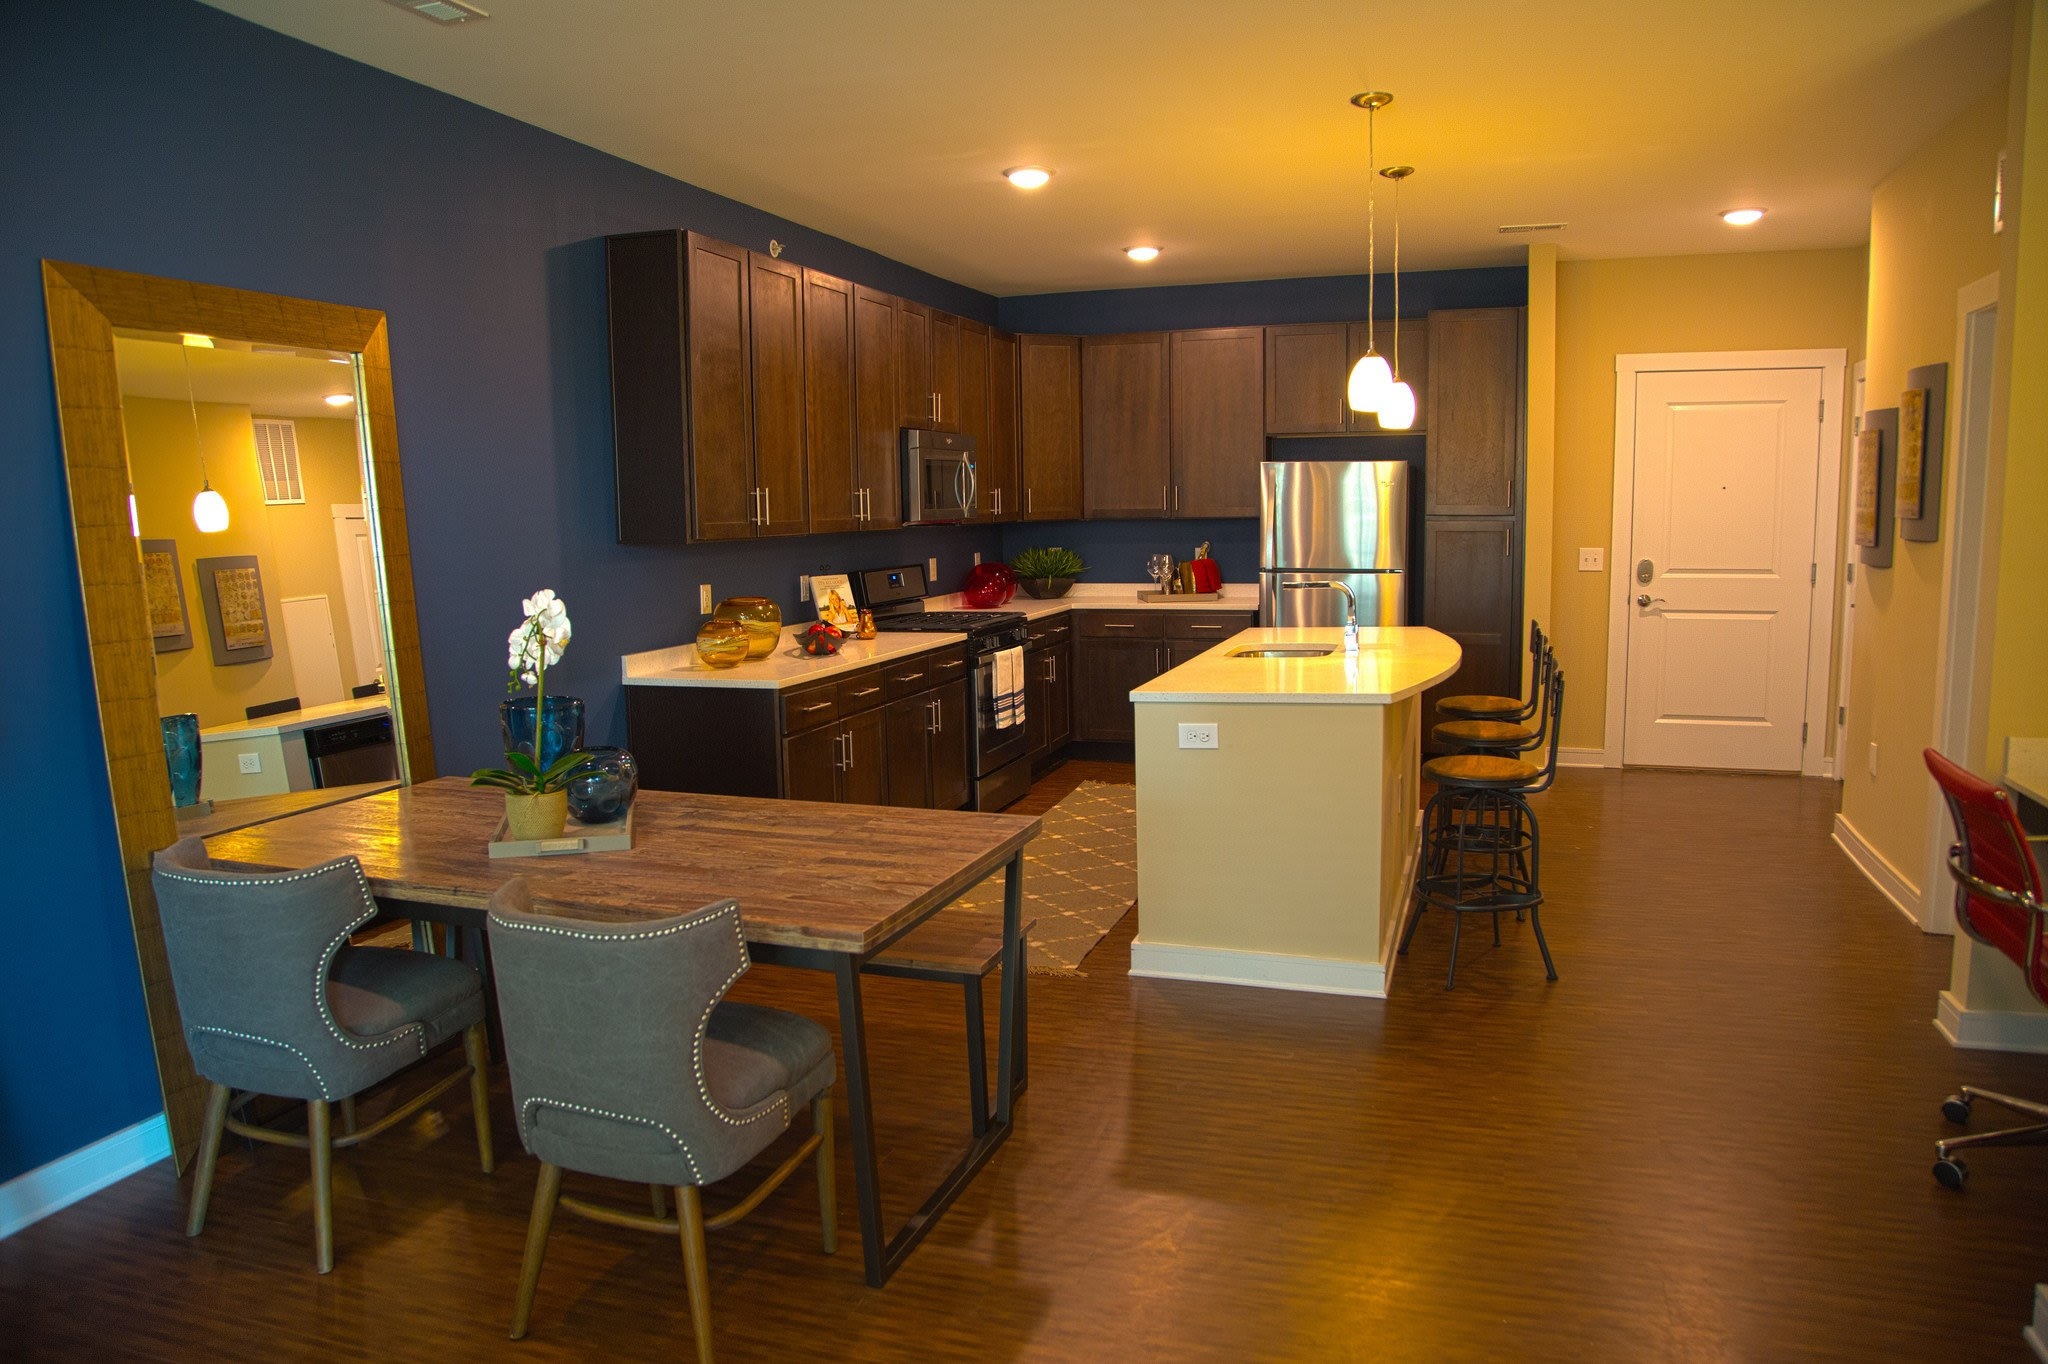 Unit kitchen area at the apartments for rent in Canonsburg